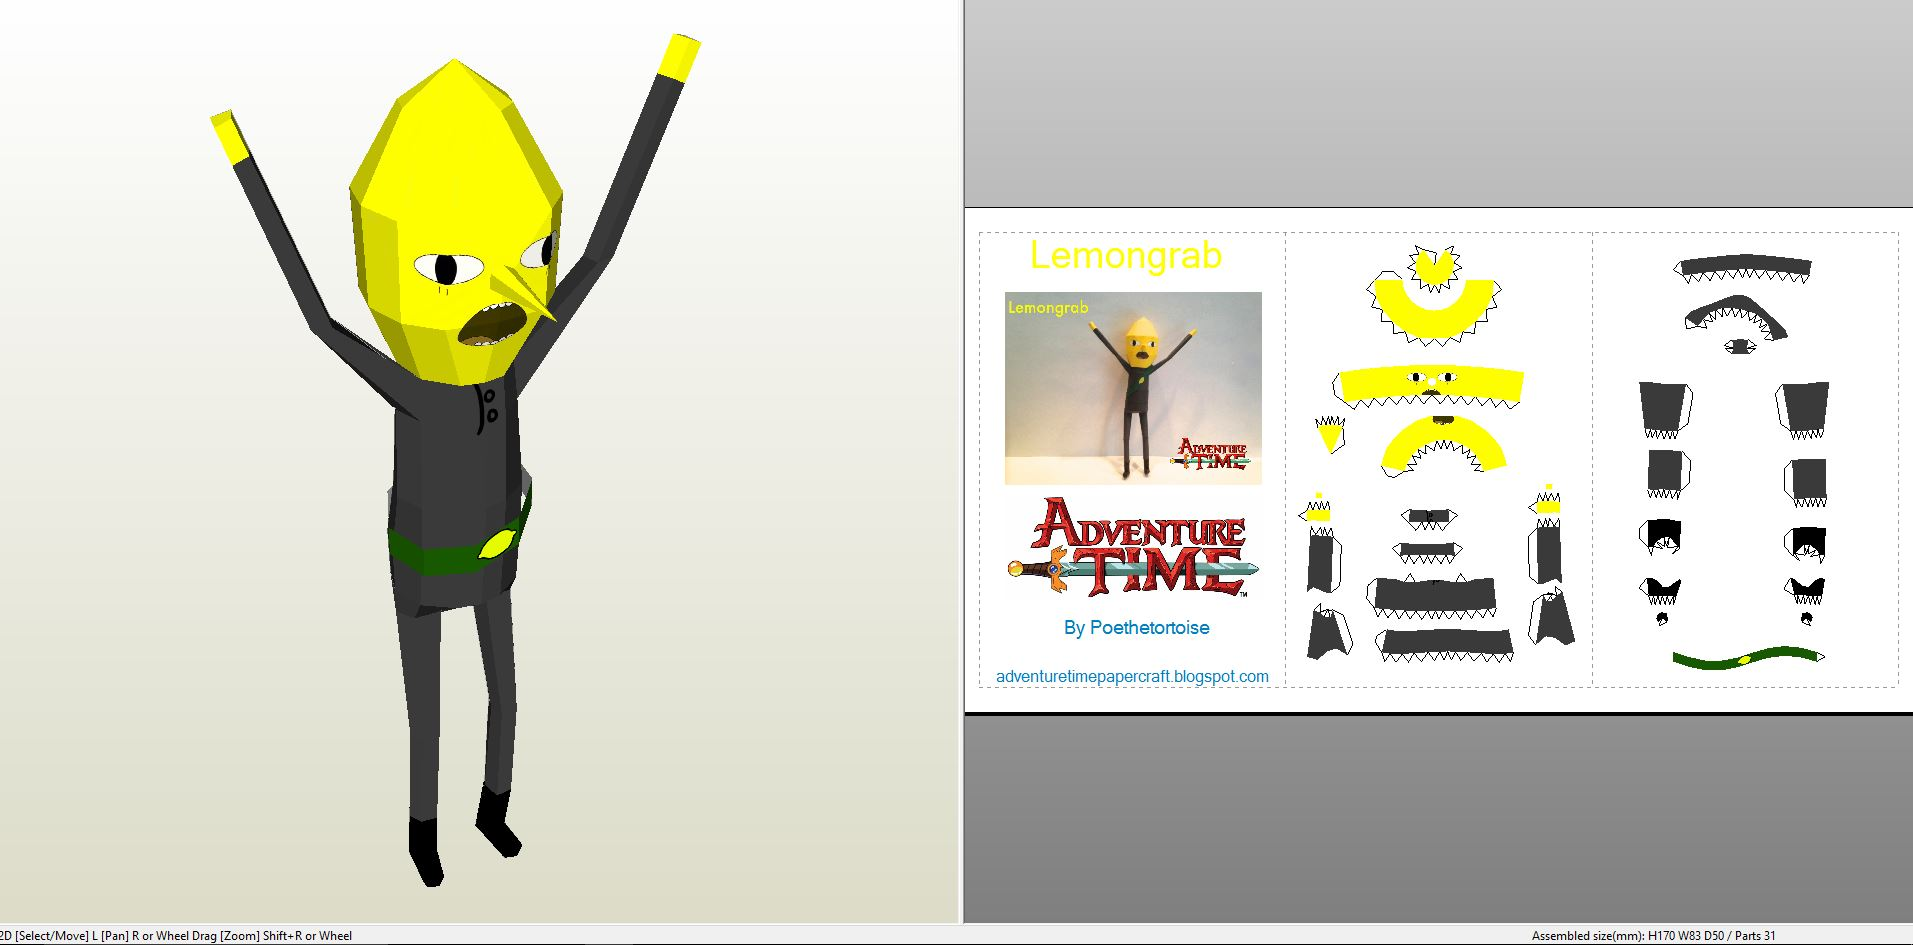 Papercraft Pdo File Template For Adventure Time Lemongrab